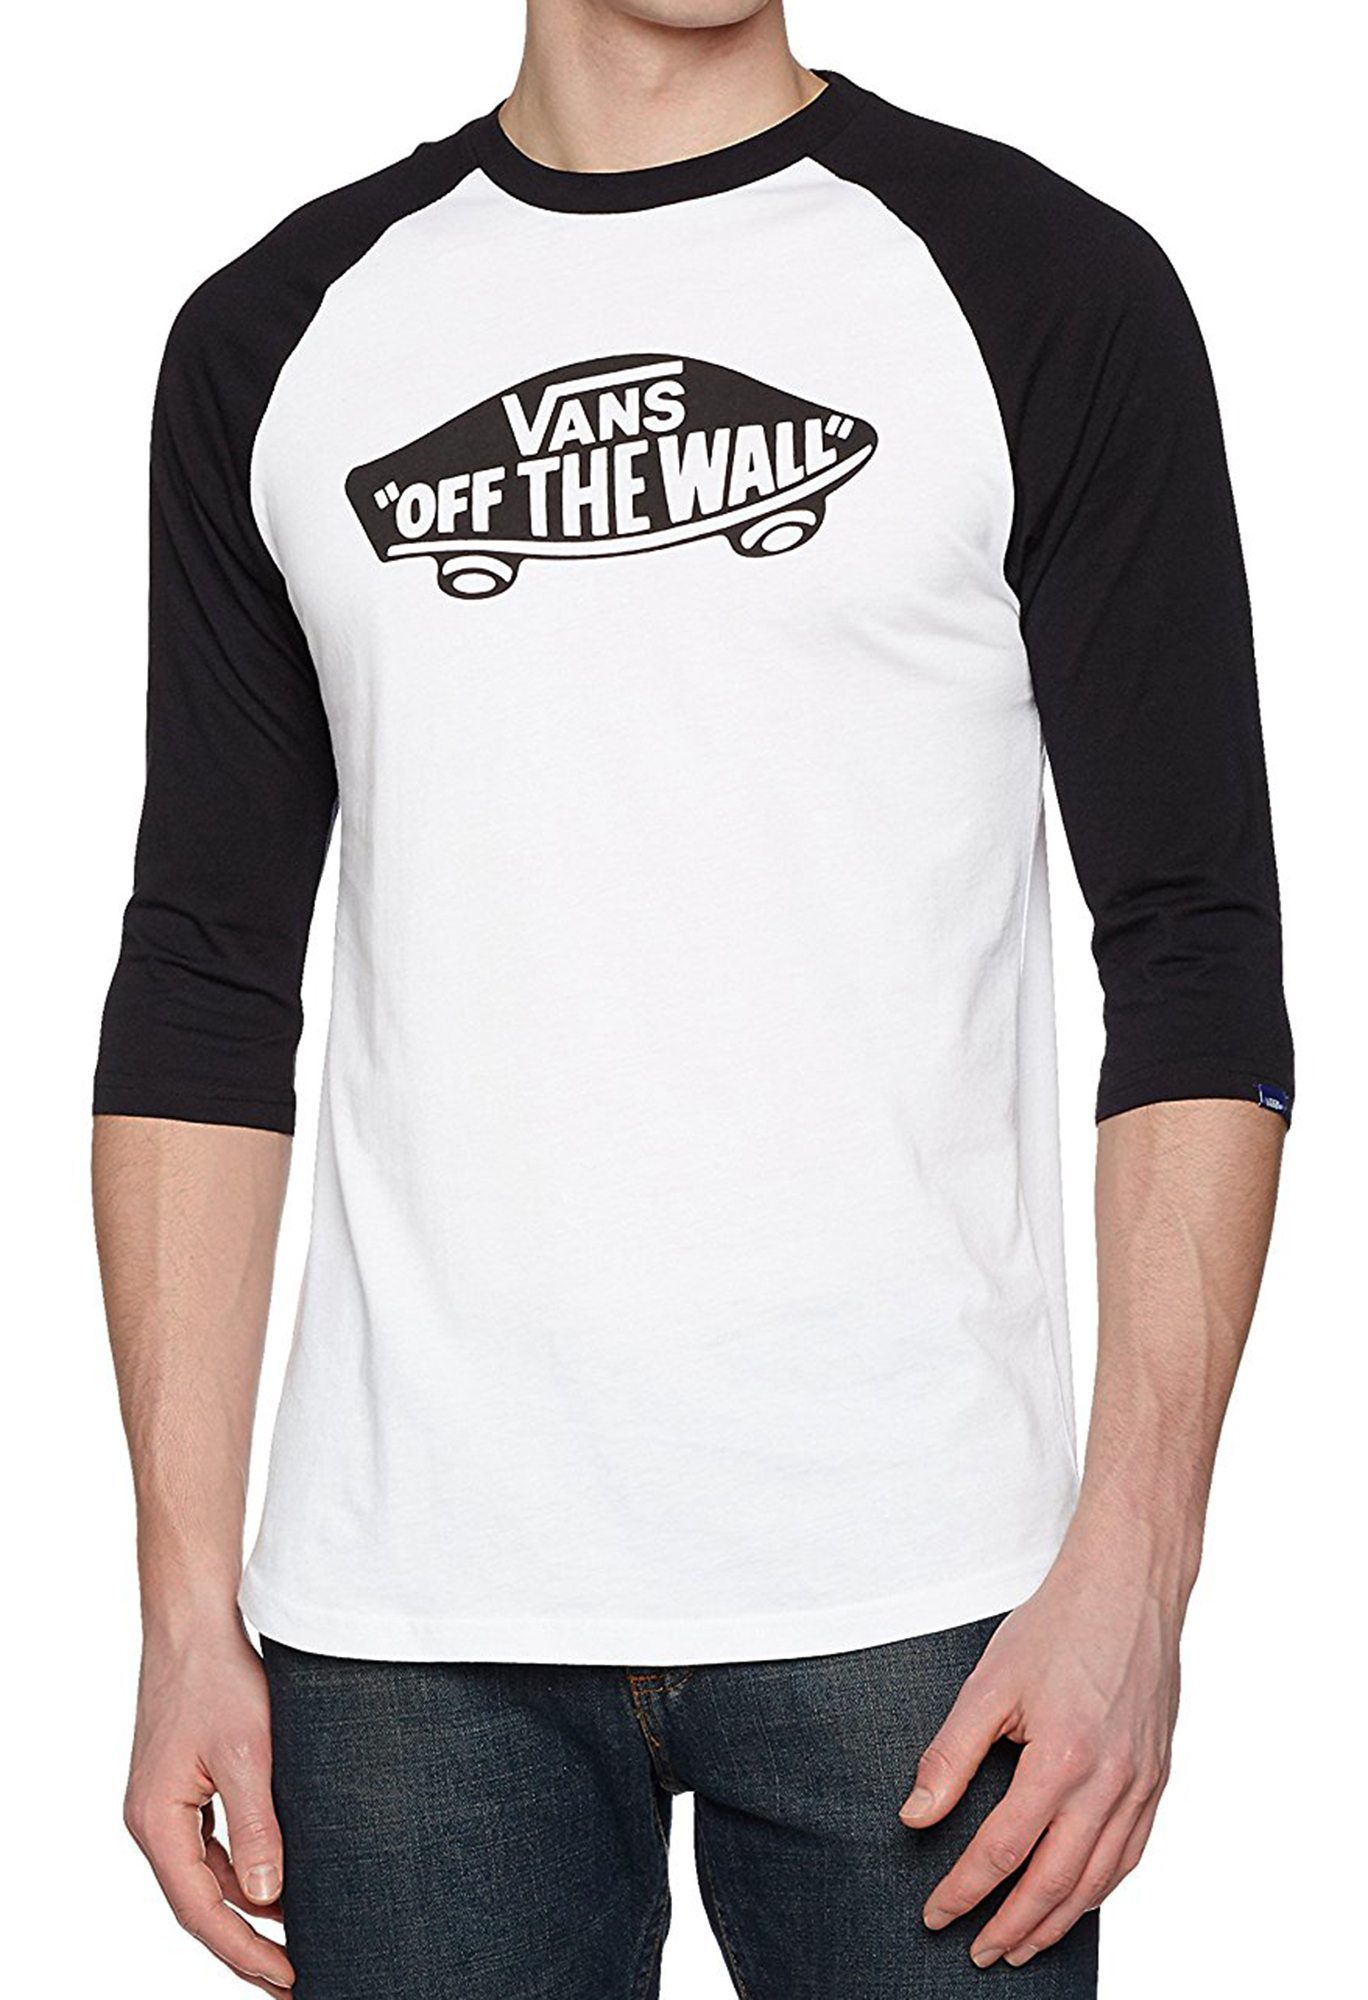 Details zu VANS Off The Wall Logo Mens Long Sleeve Raglan T Shirt Print Top Tee Black White